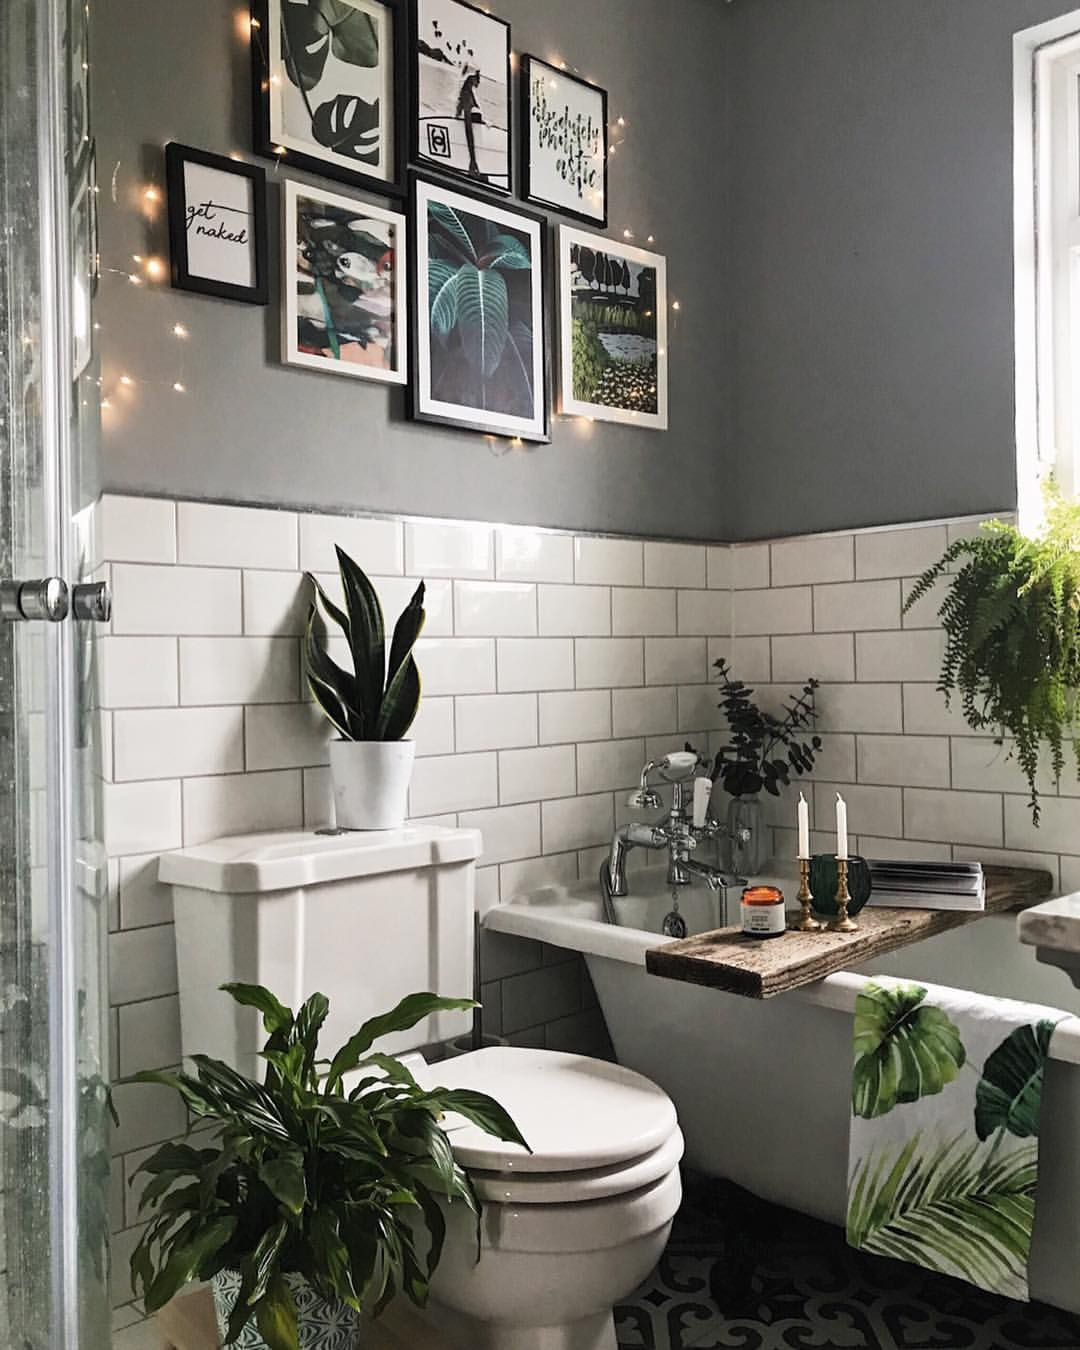 Wall Decor for the Bathroom Unique Gallery Wall Art In the Bathroom Grey and Metro White Tile